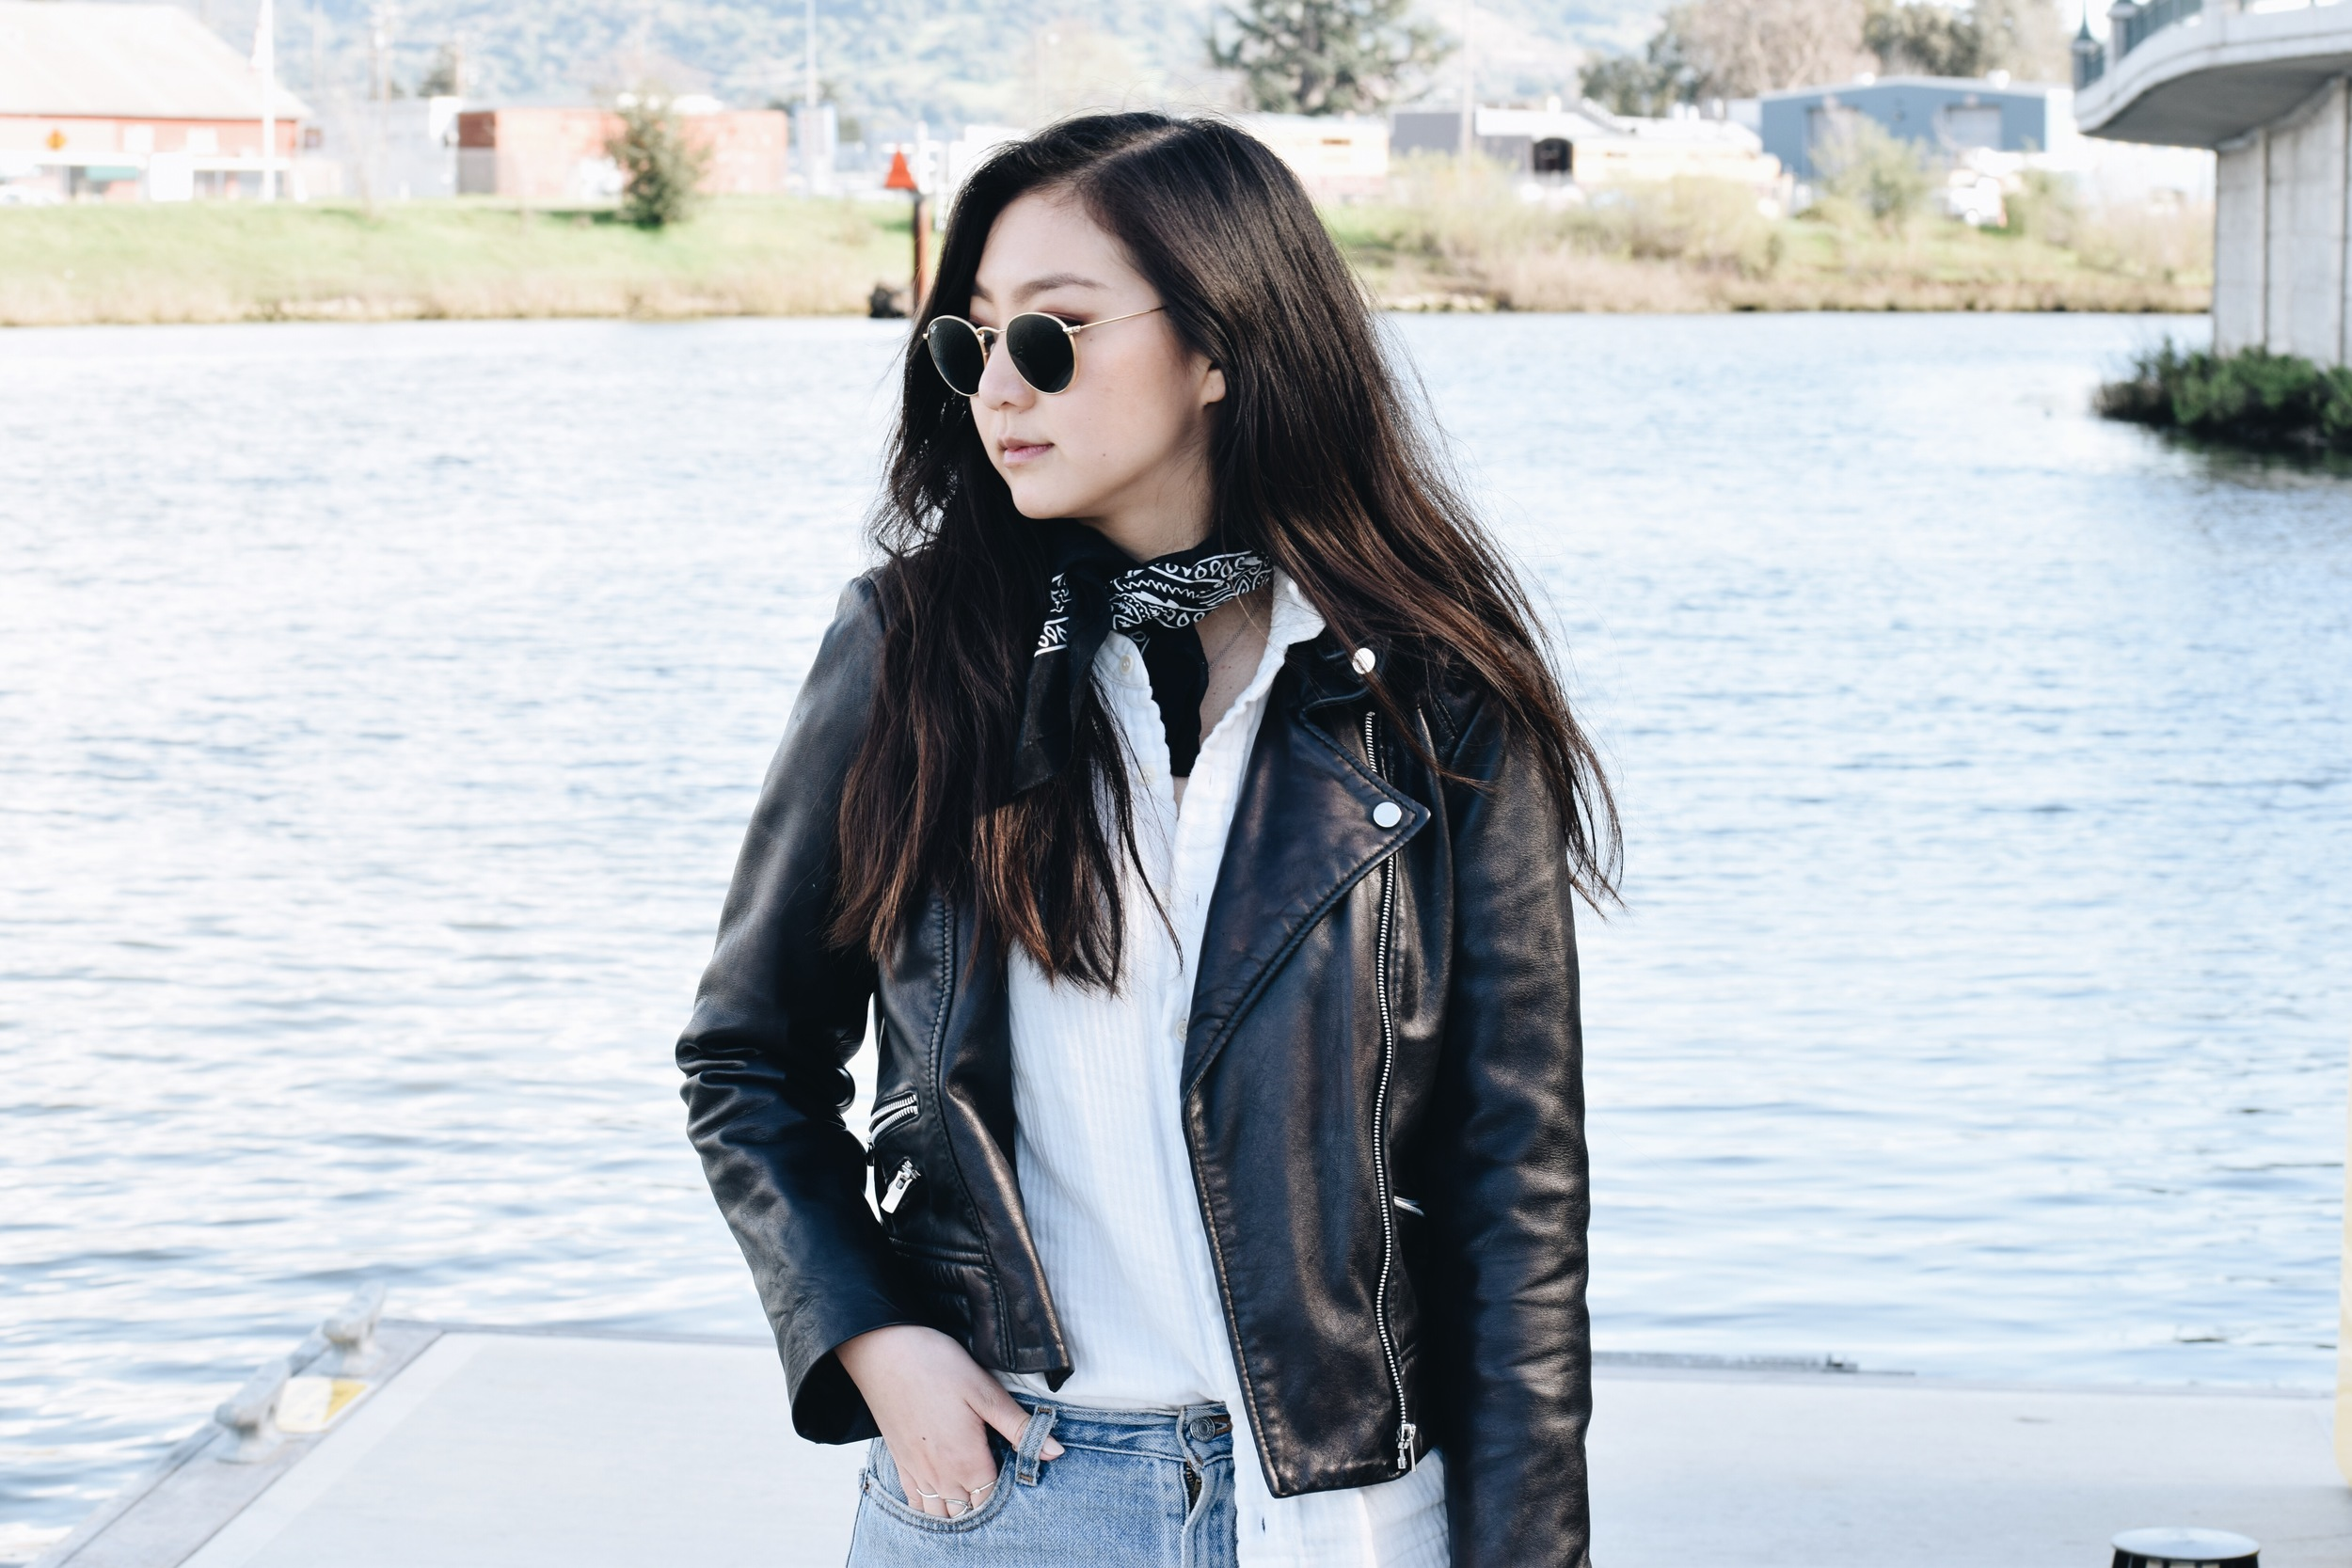 MANGO  leather jacket (similar  here )  / FREE PEOPLE  shirt  / URBAN OUTFITTERS   bandana